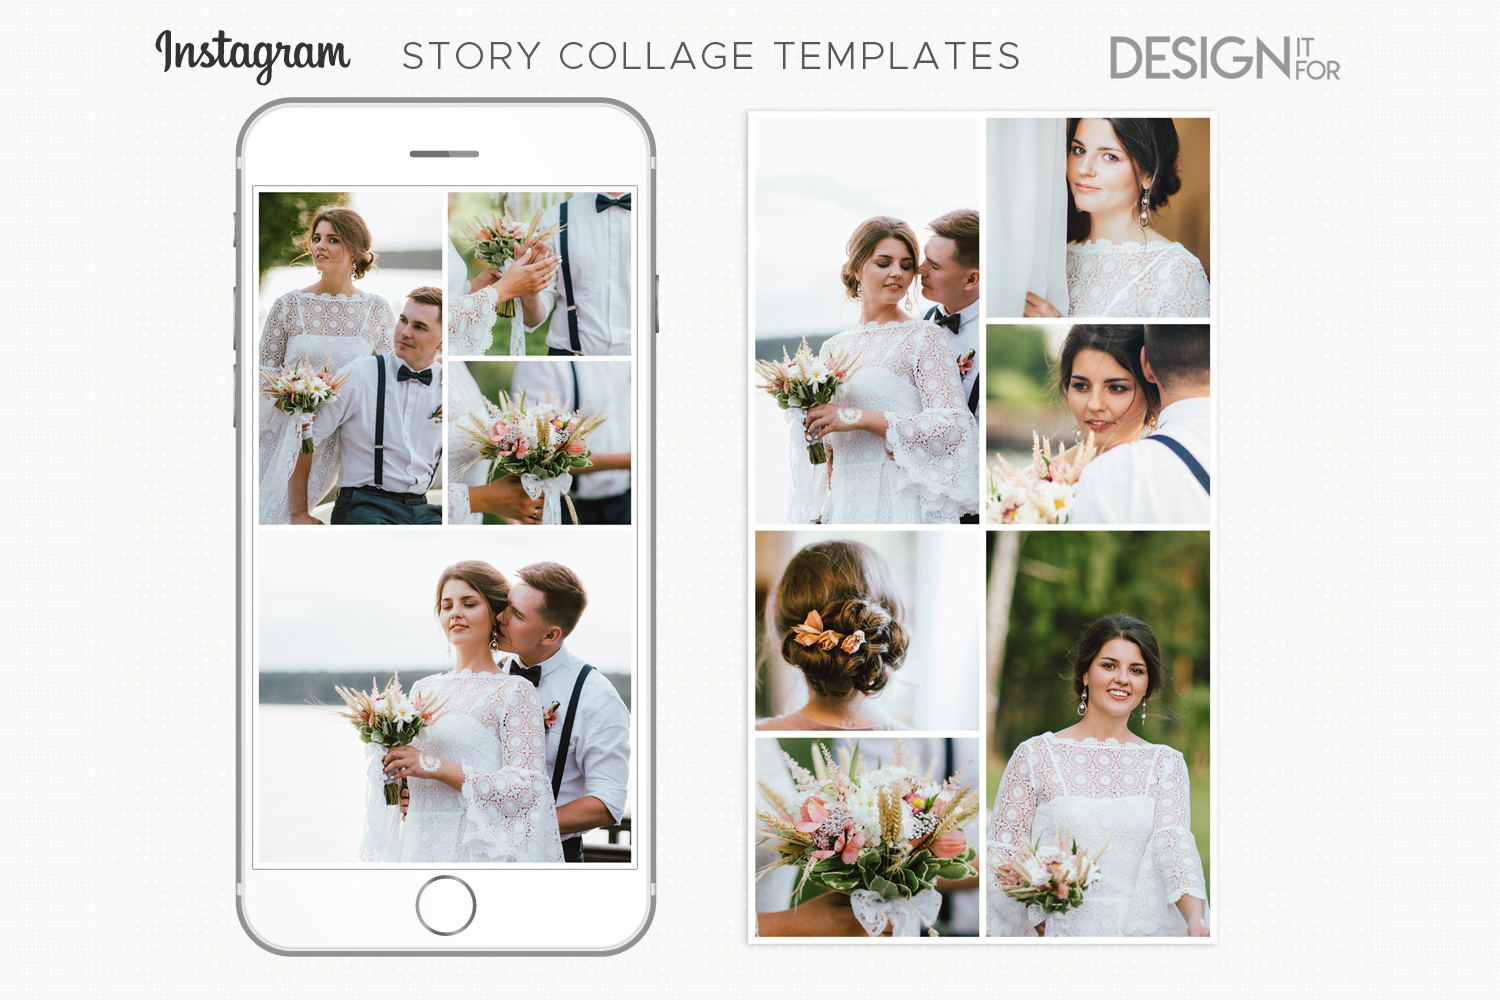 instagram story templates, instagram story collage templates example image 2